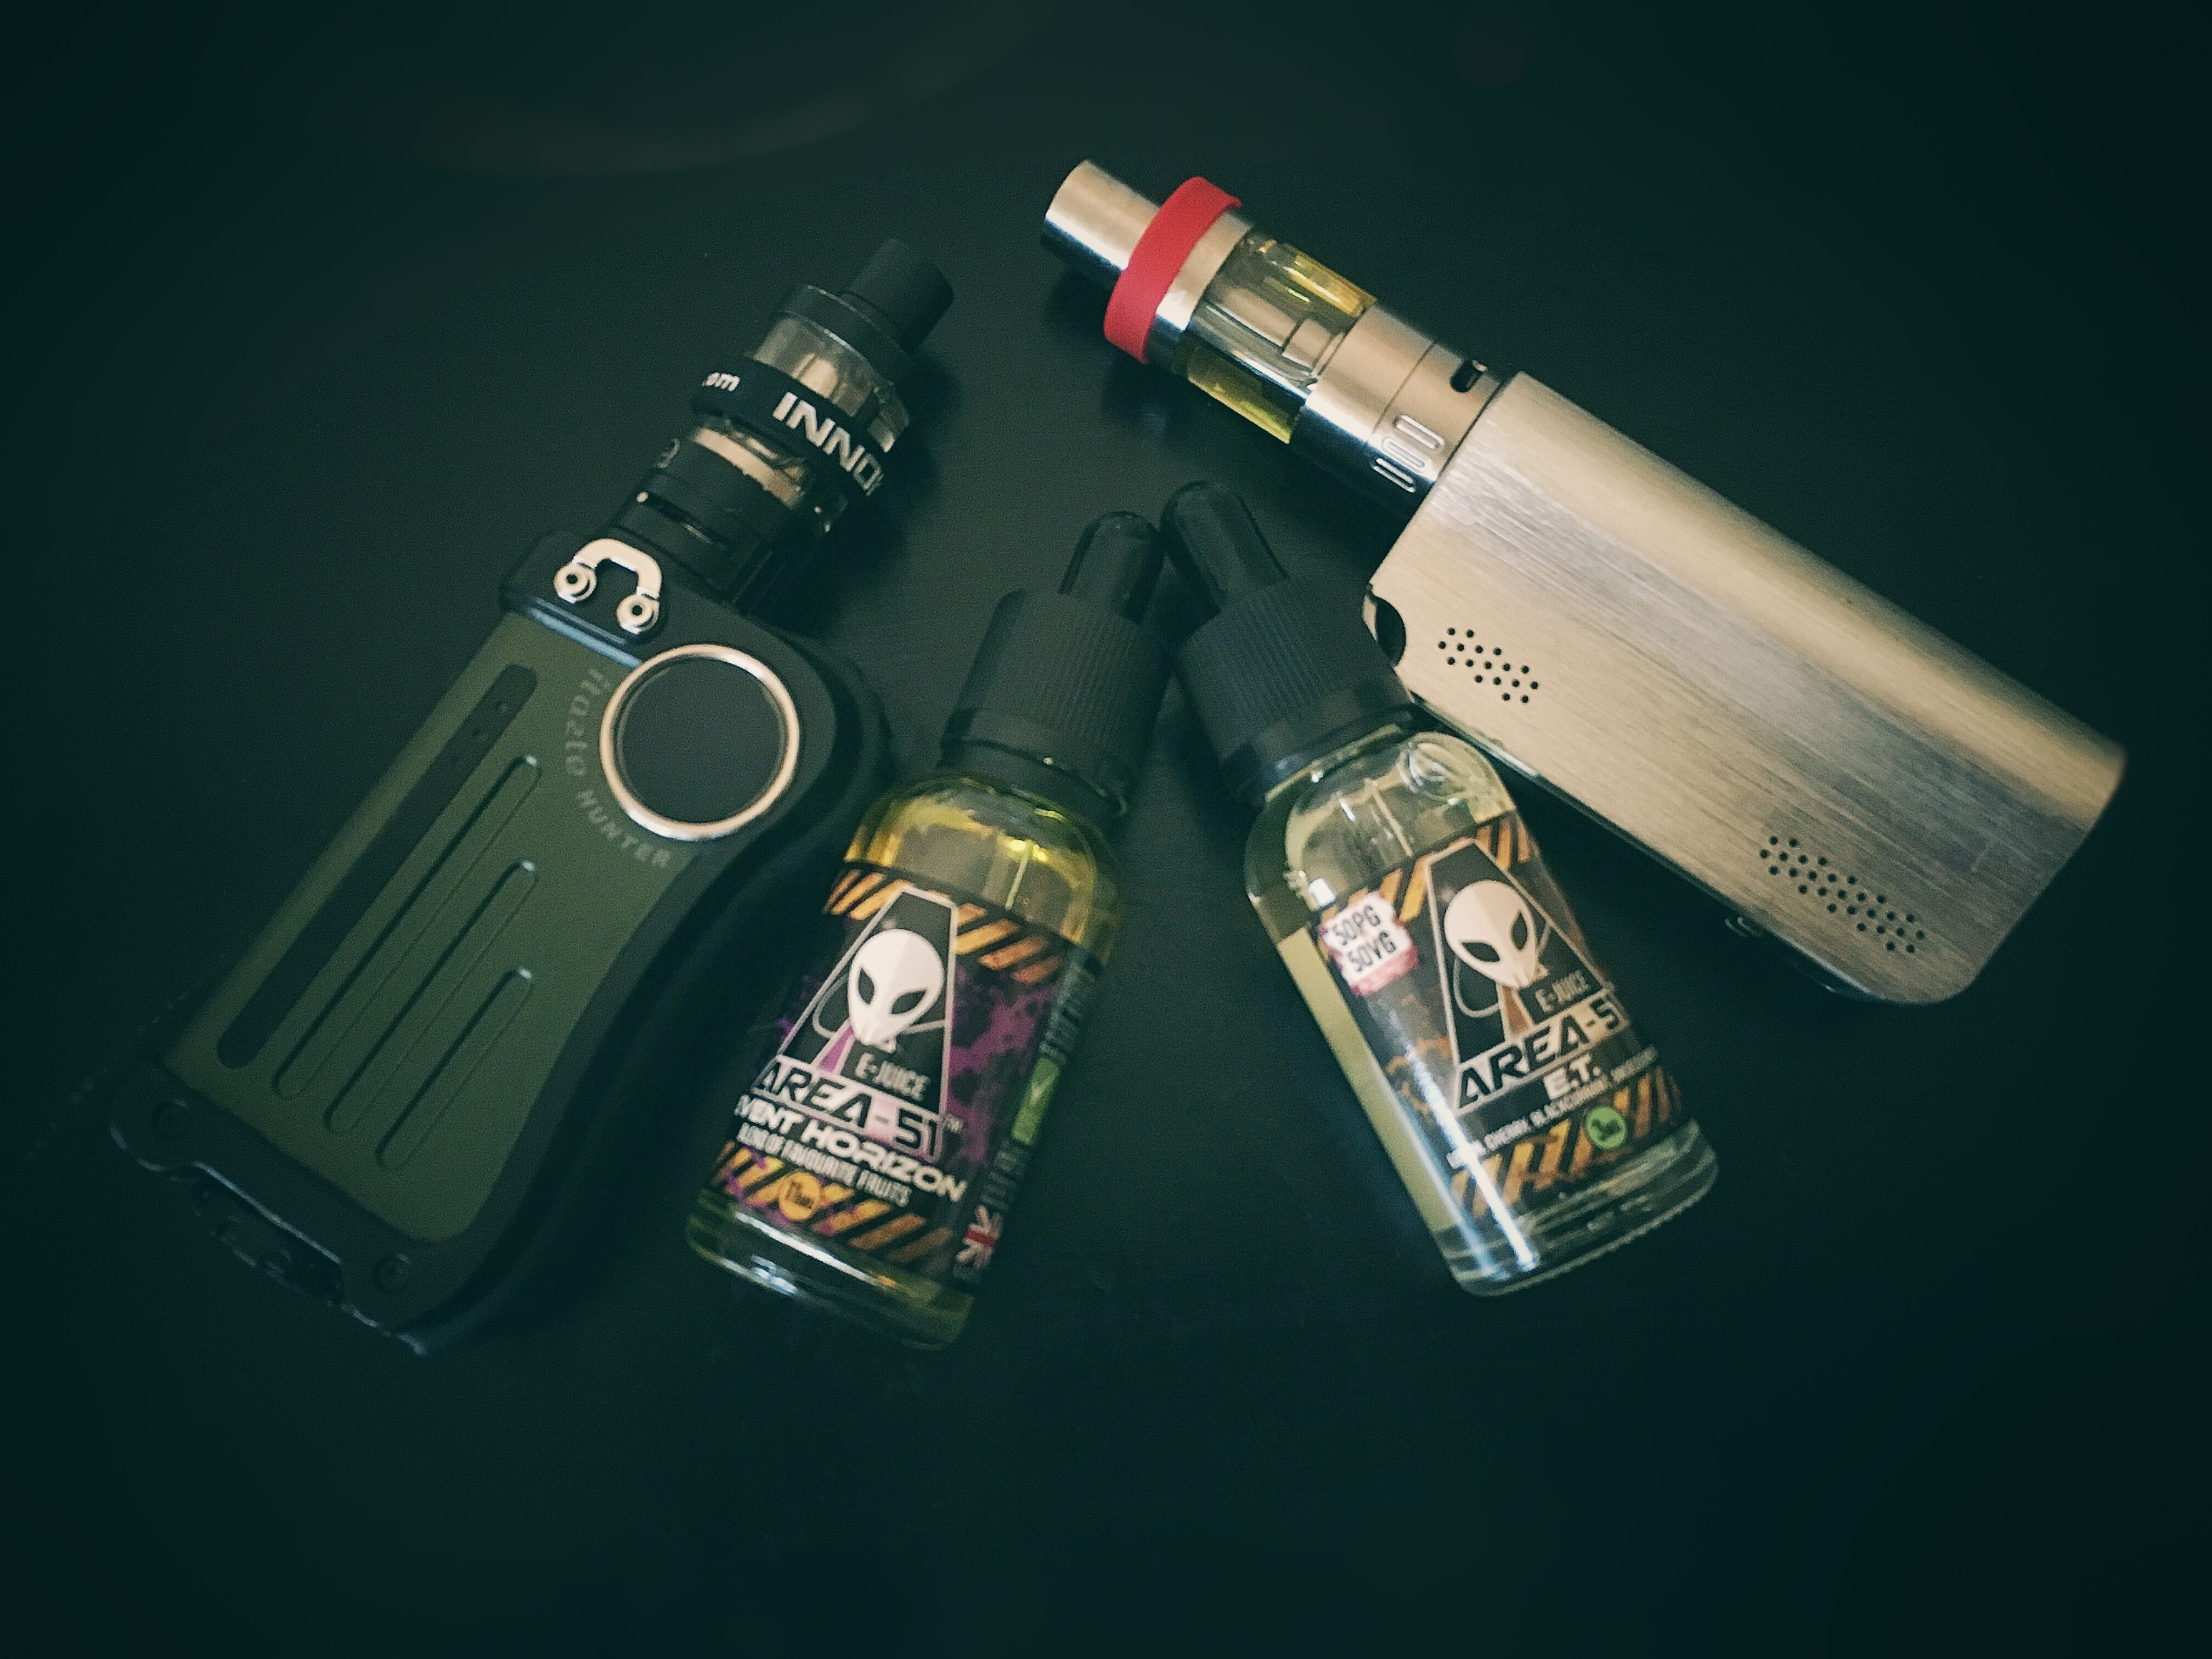 Today's mods ✌️trying out some new juice! Area 51   Itazte hunter innokin & coolfire IV, Isub G tank!